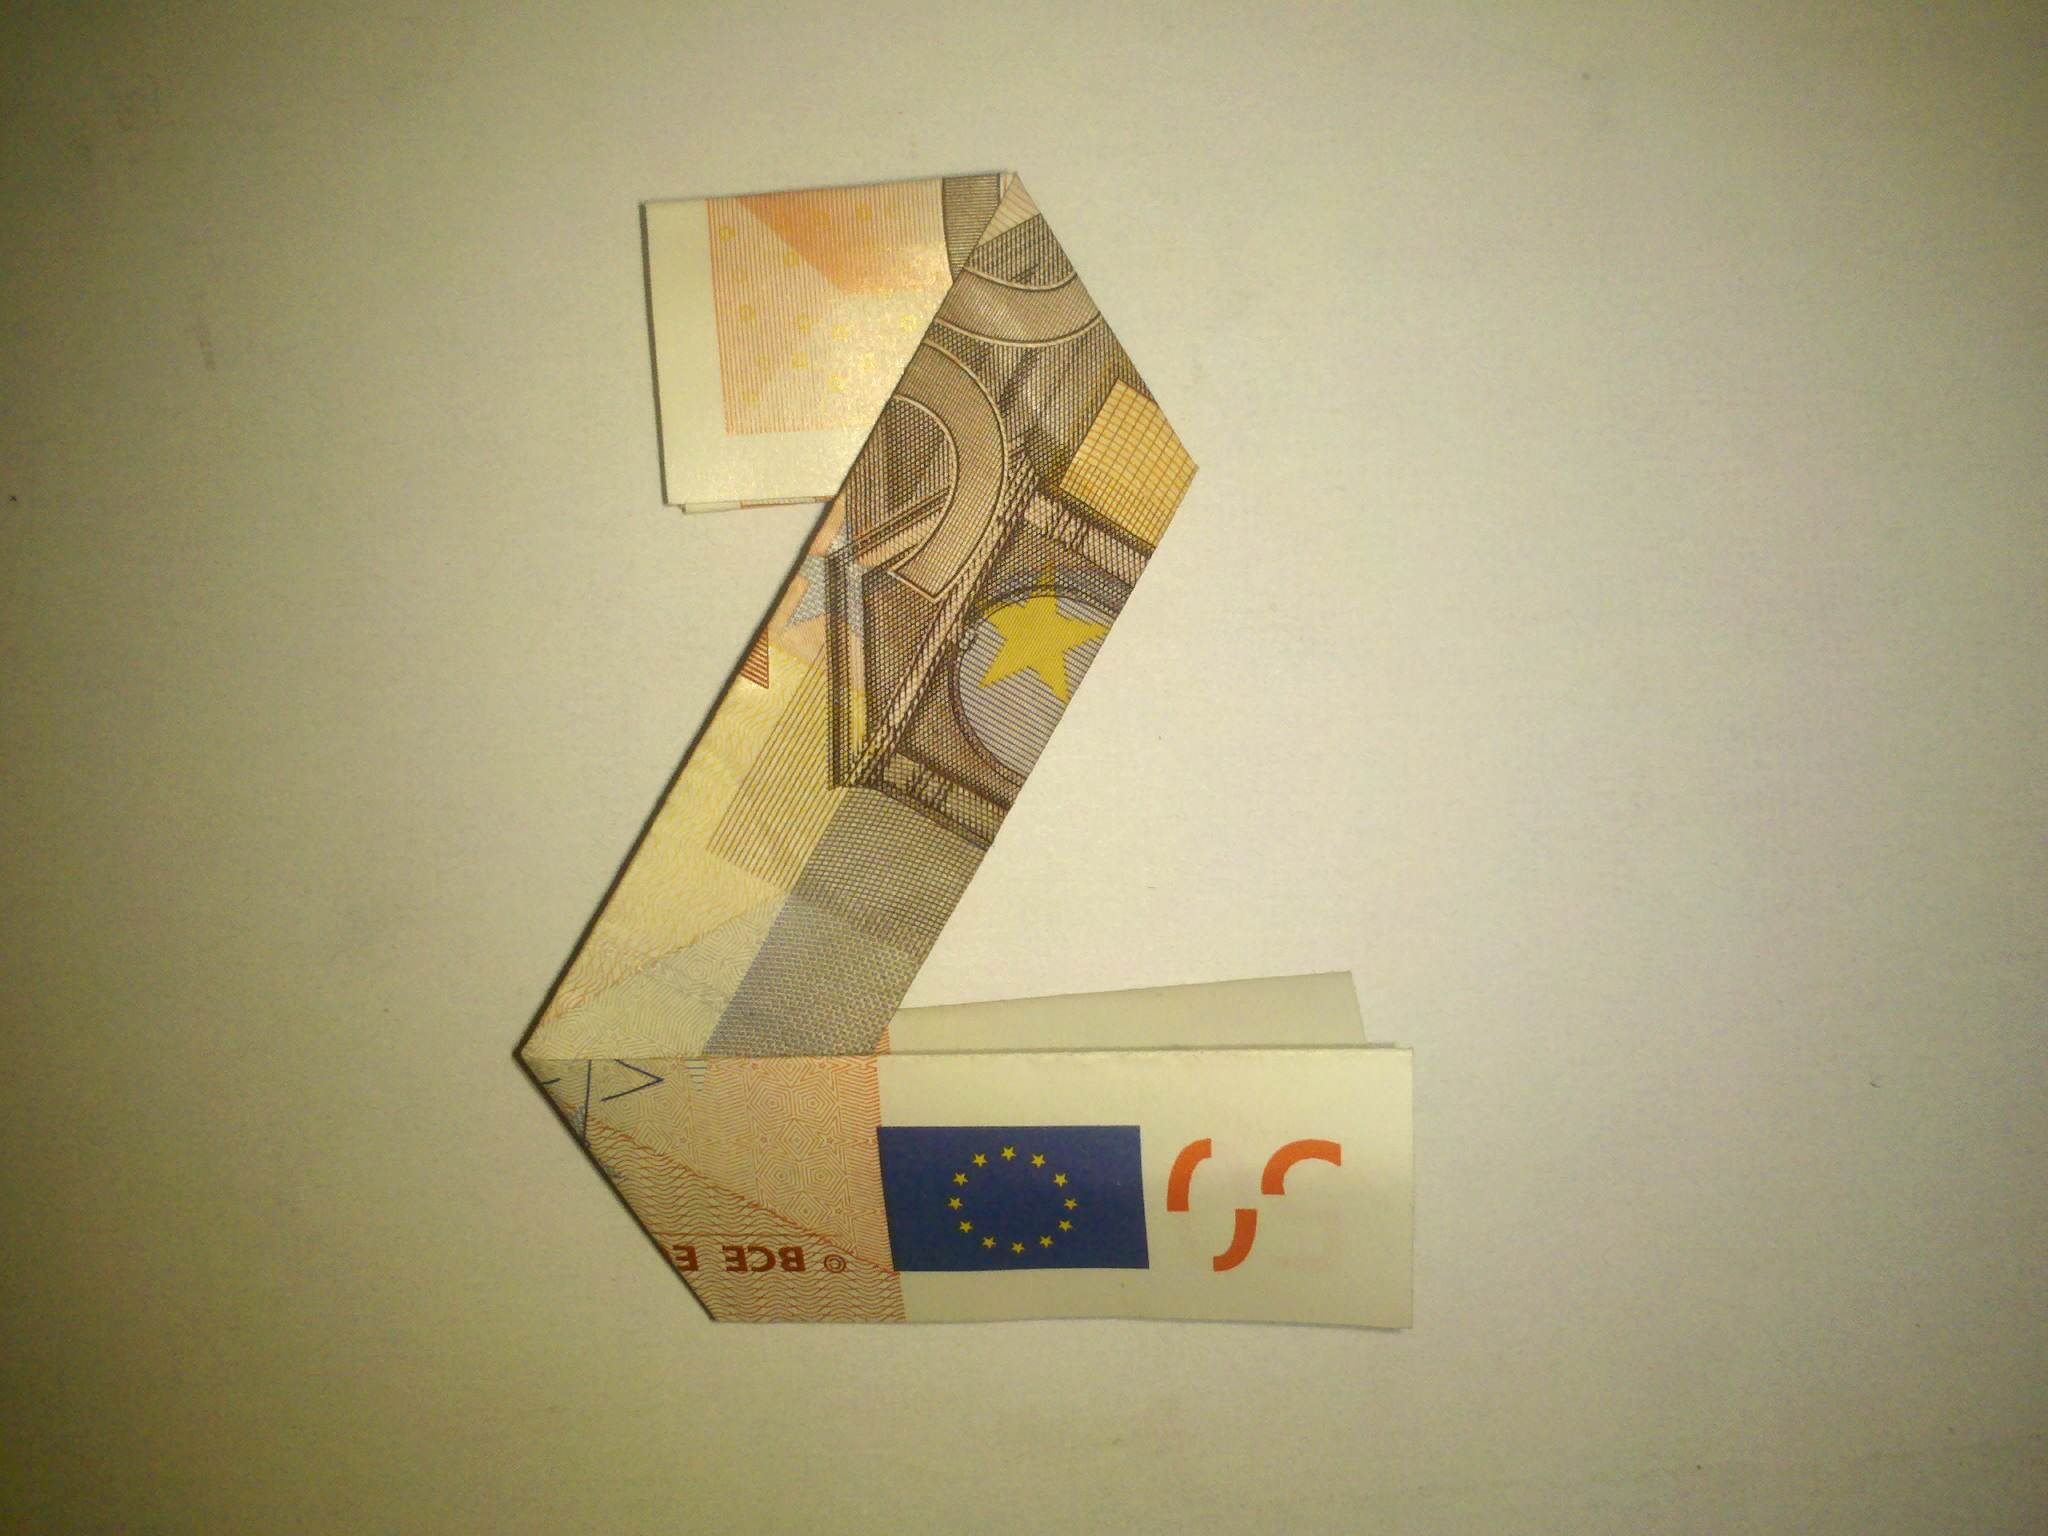 Origami: Number 2 folded from a banknote